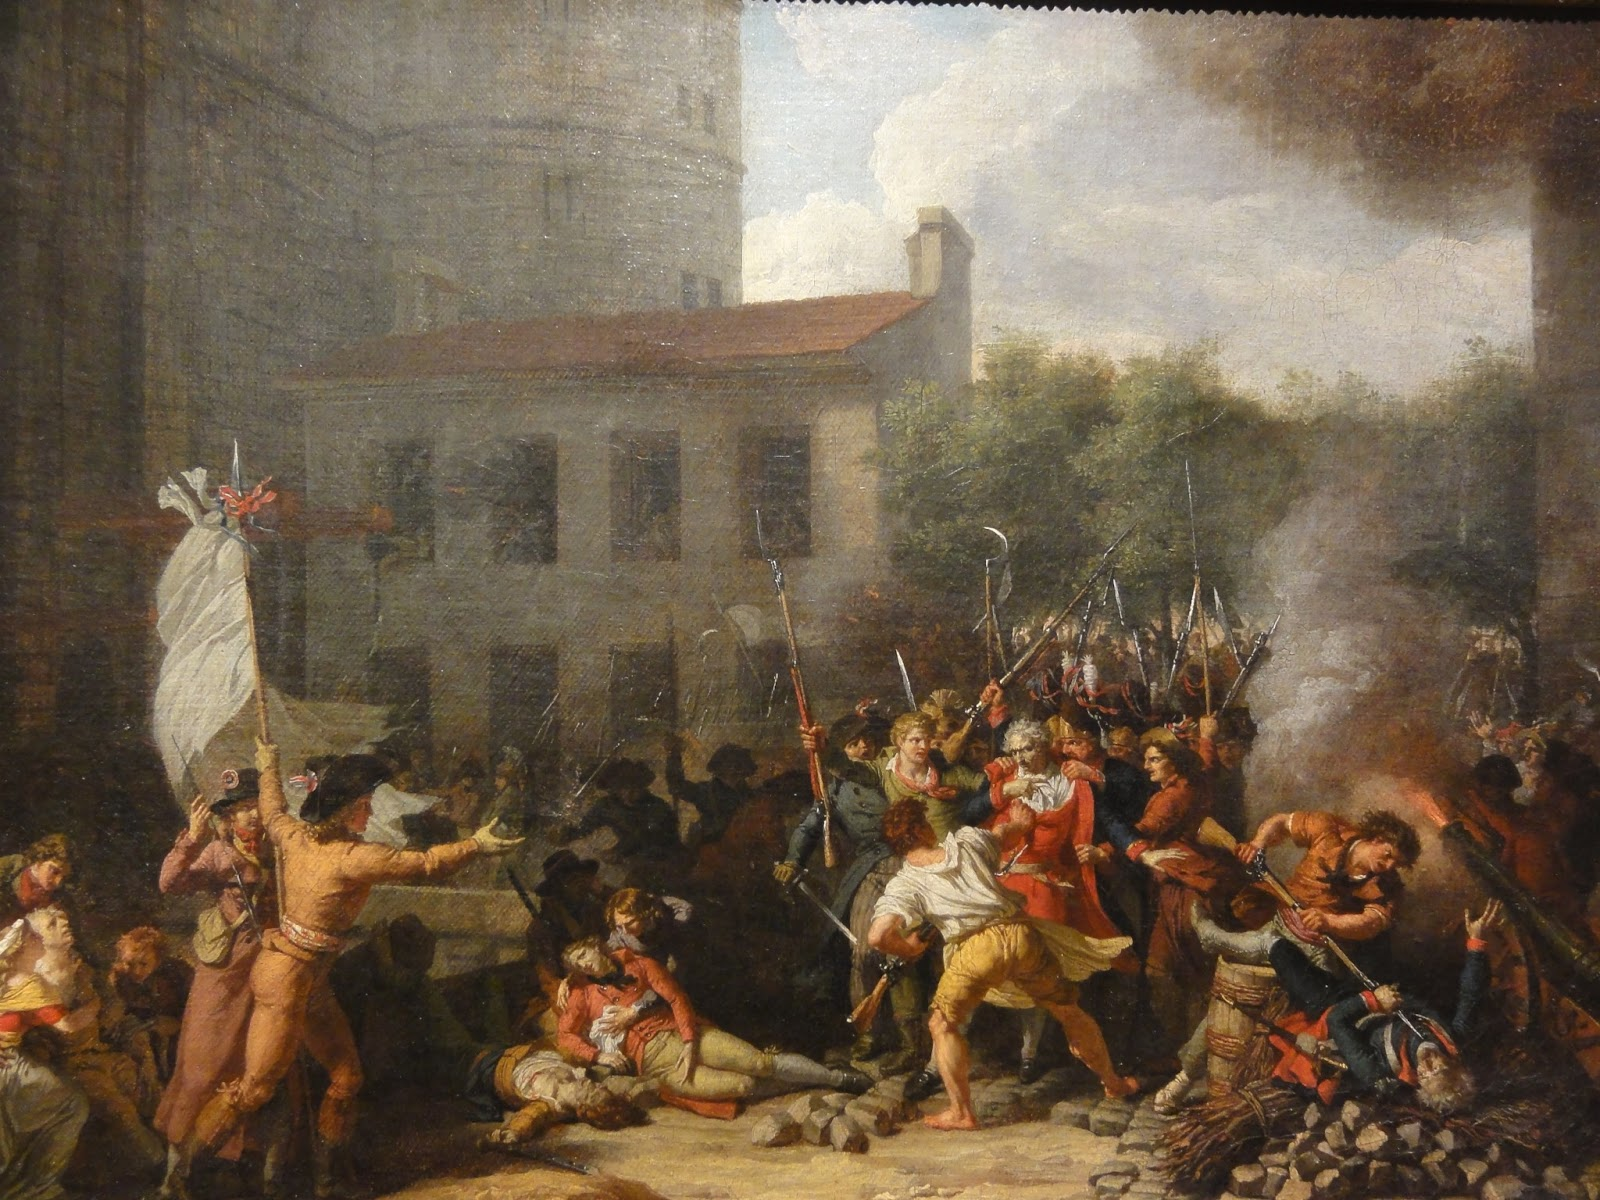 The French Revolution - The Storming of the Bastille